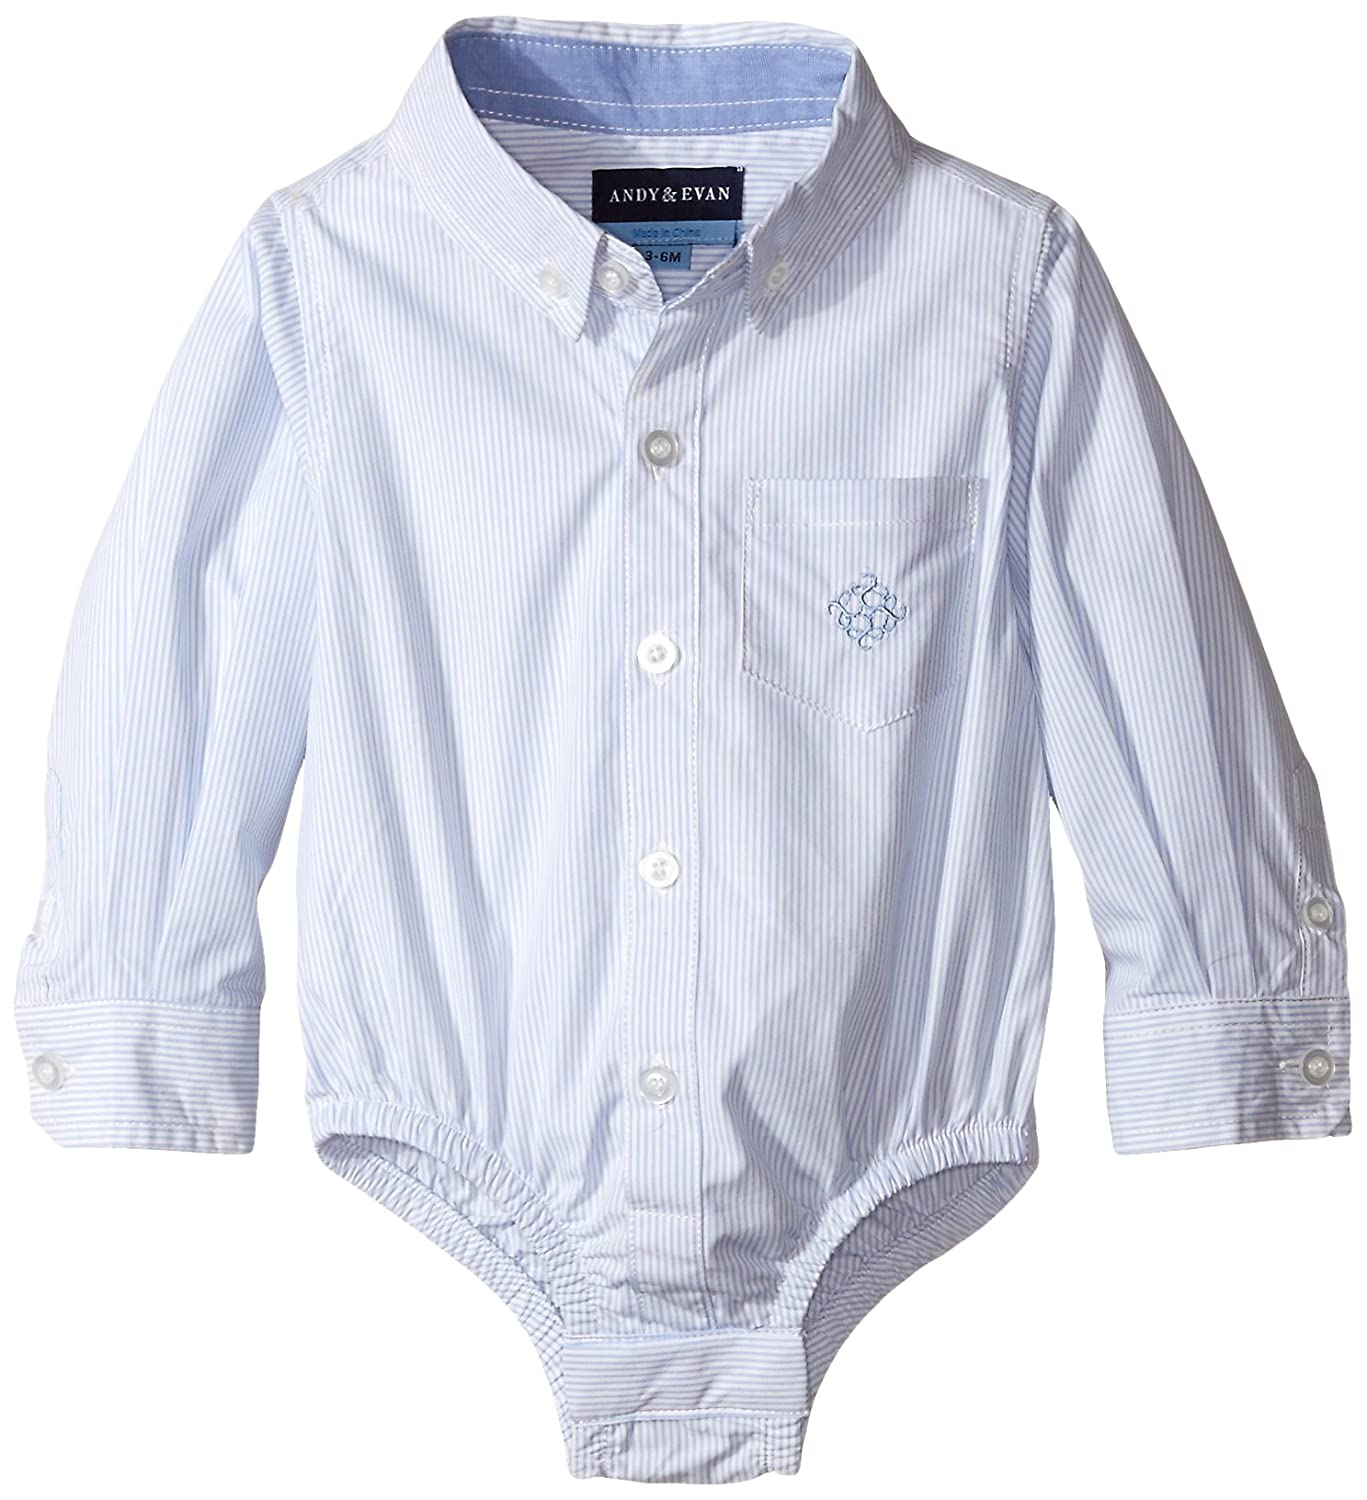 Andy & Evan Baby Boys' White Oxford Shirtzie 26348A-WHA